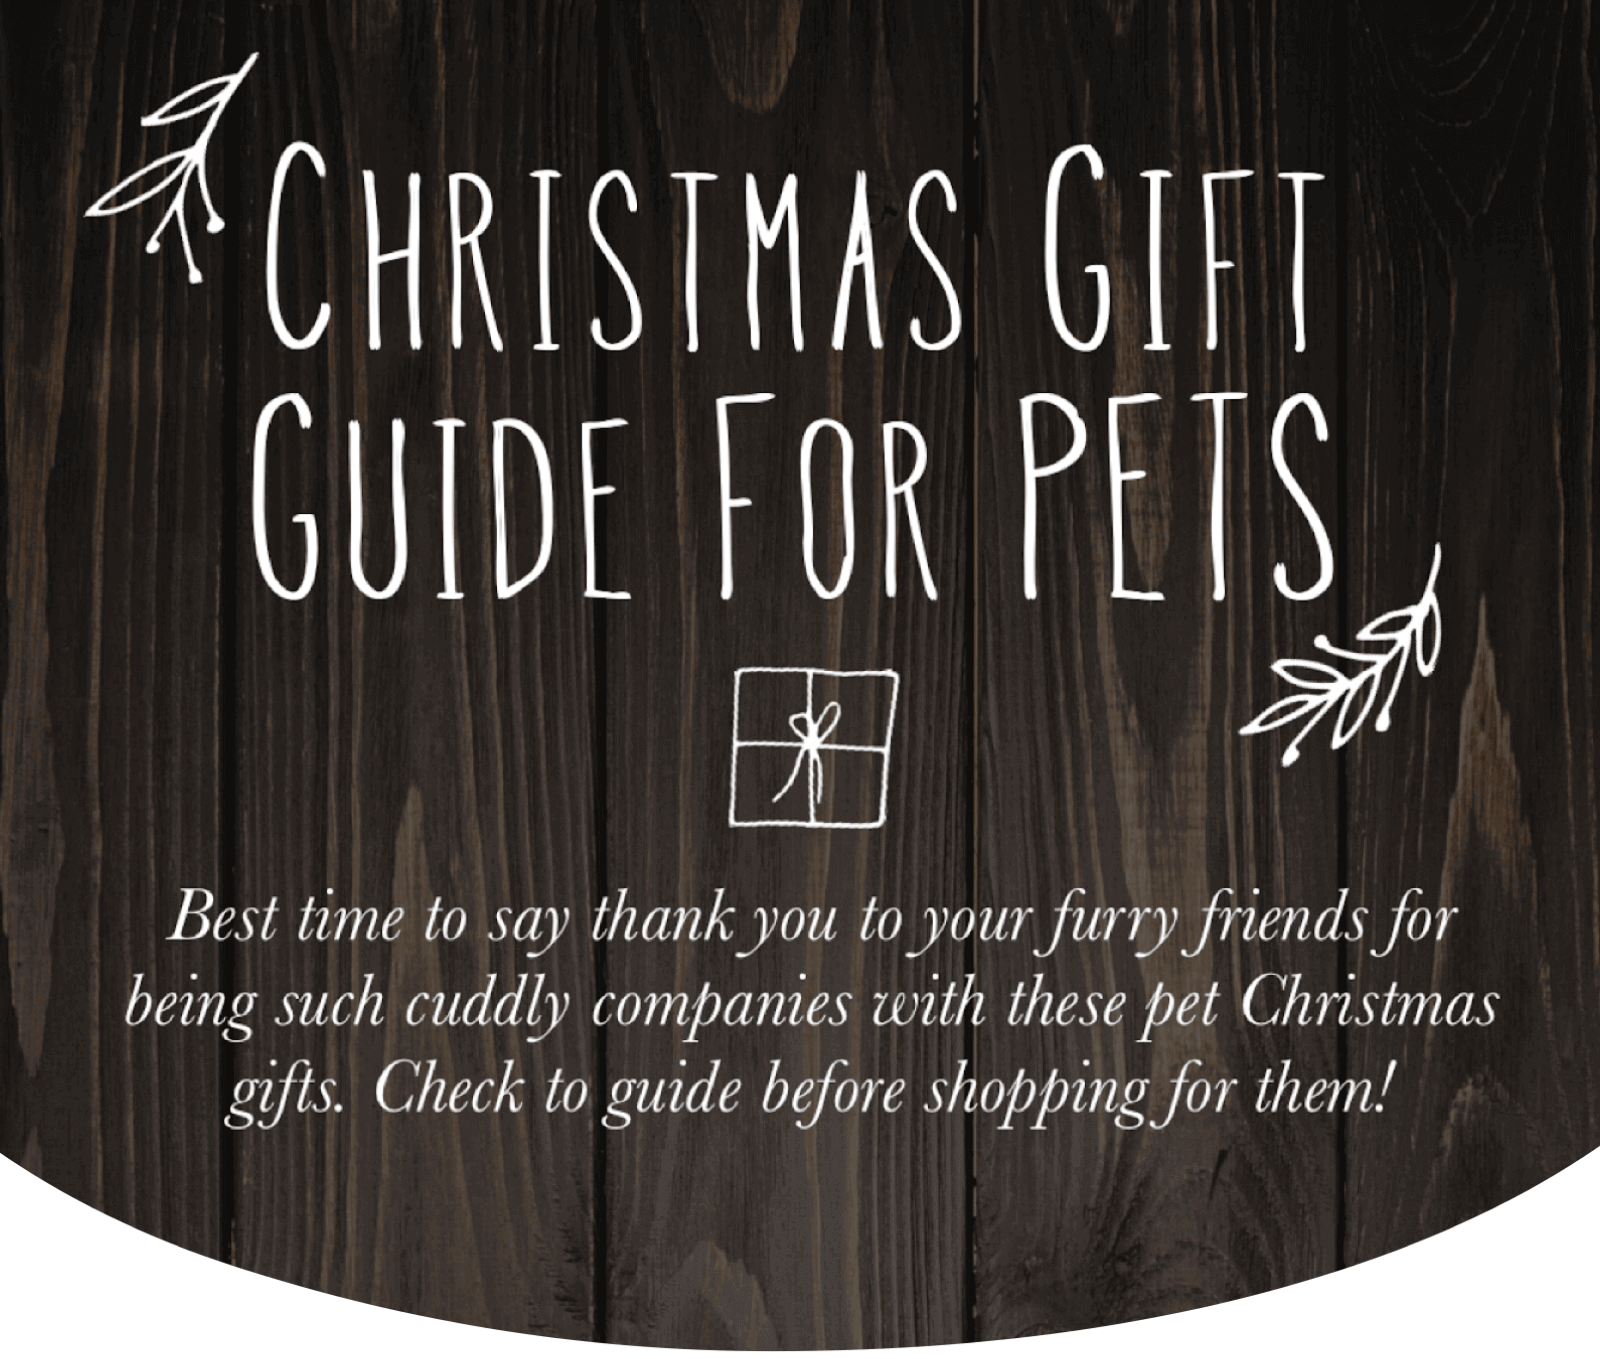 Christmas Gift Guide For Pets